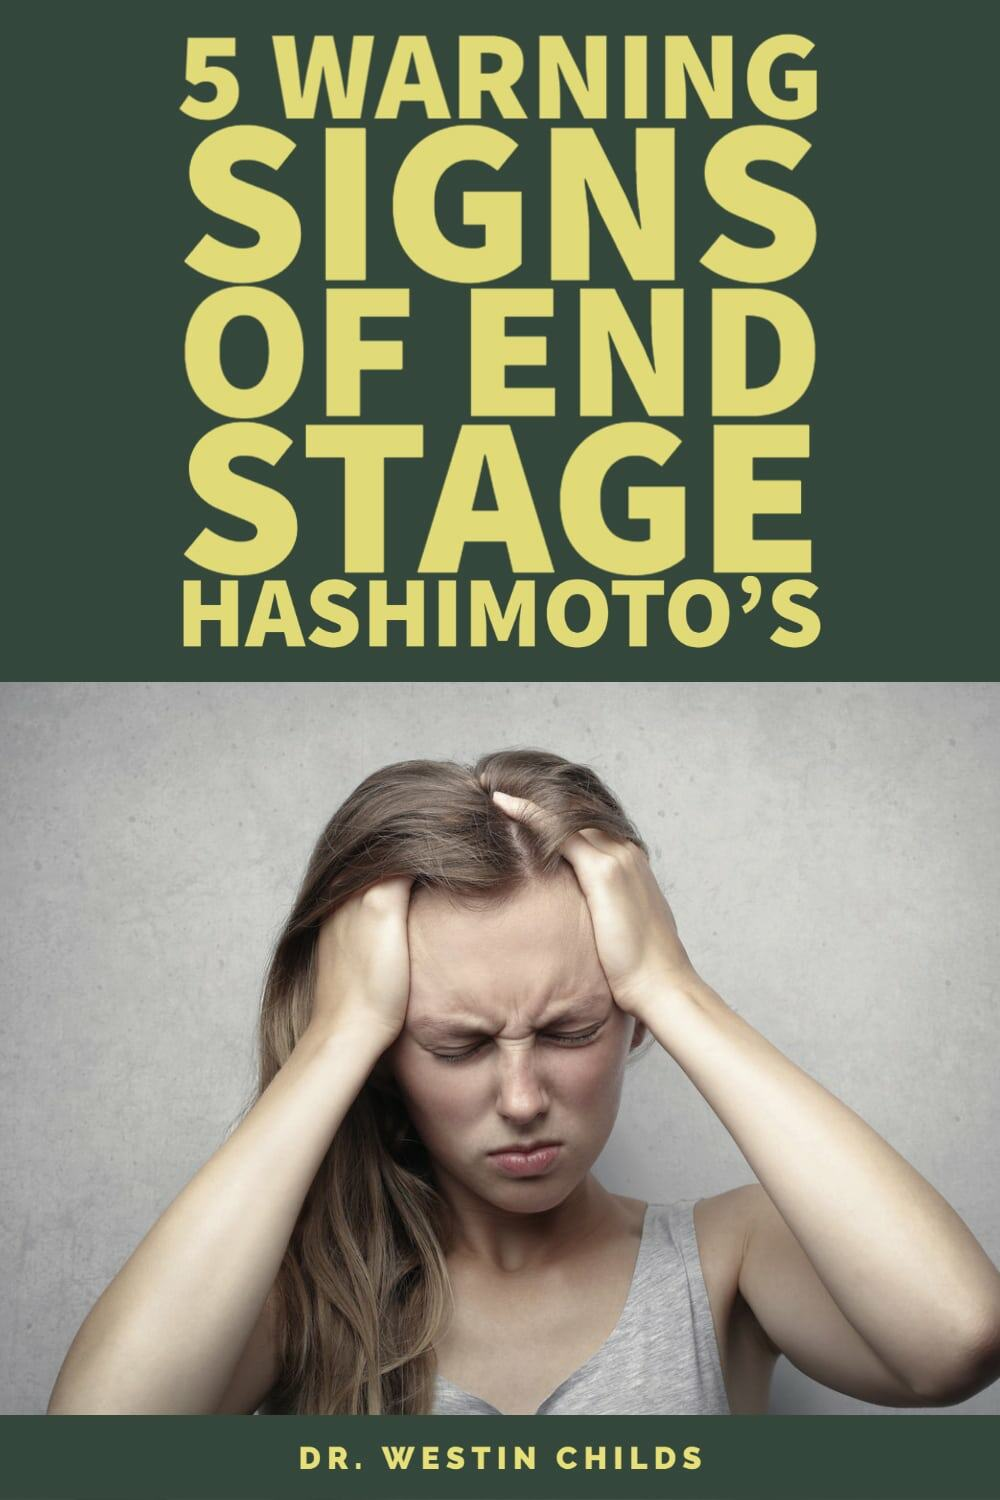 5 early warning signs of end stage hashimoto's thyroiditis